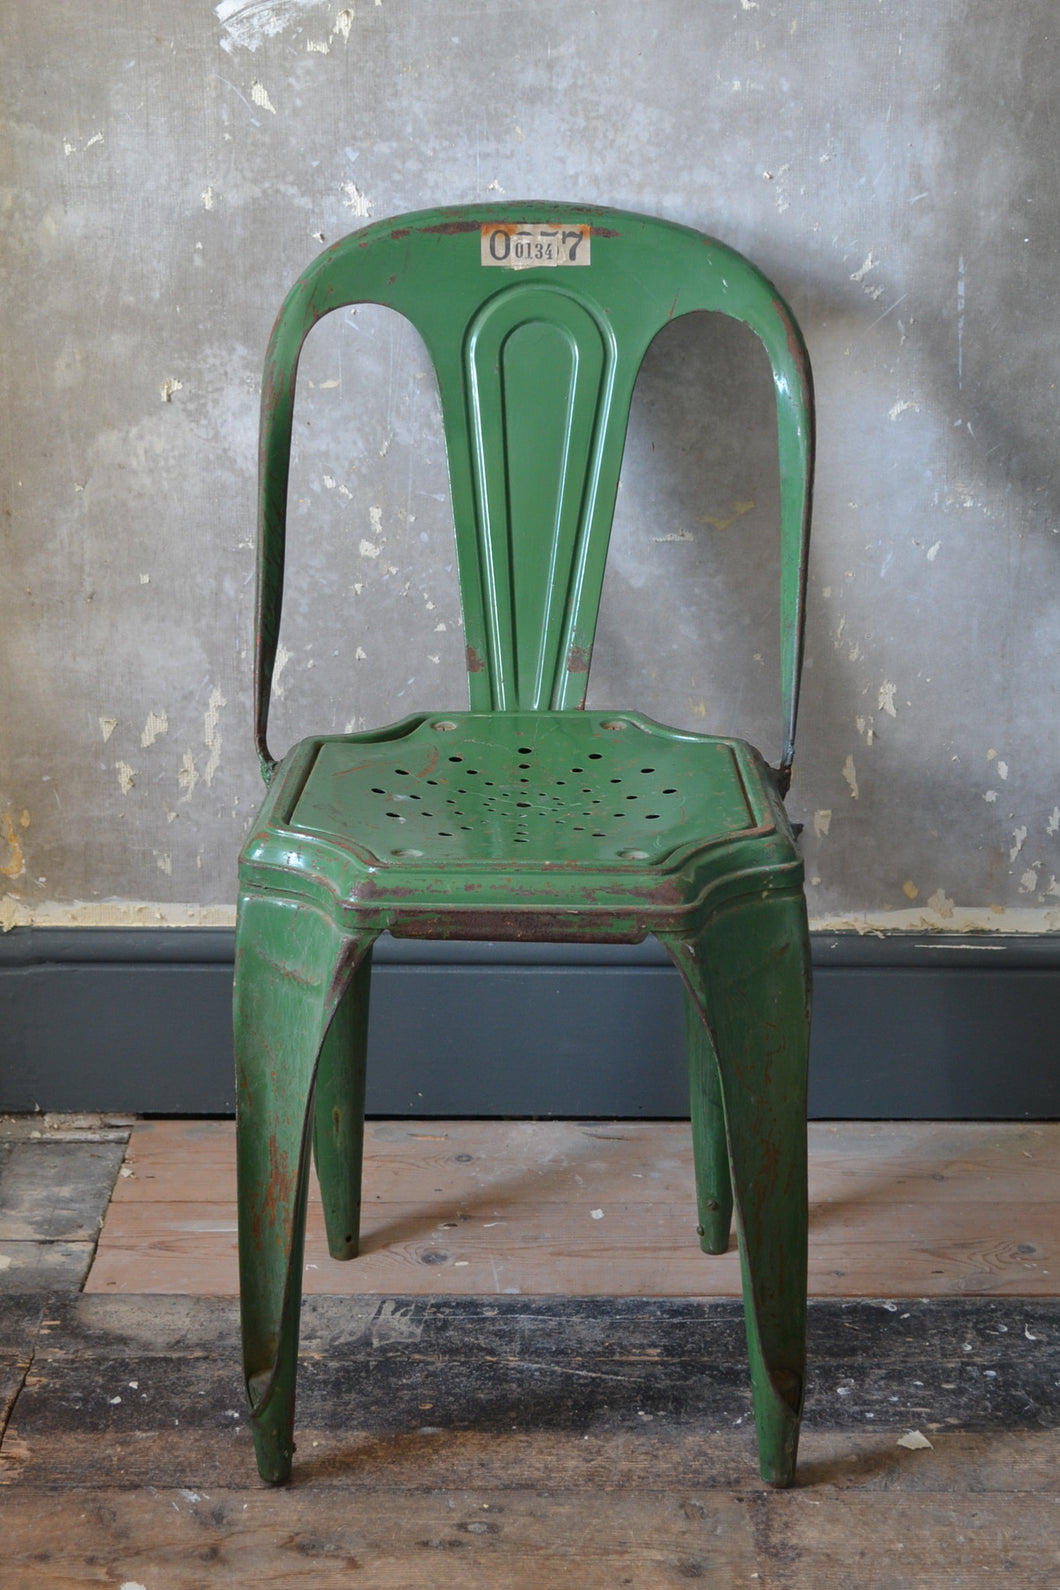 Set of 4 Vintage Industrial 1940's Belgian Cafe Chairs SOLD OUT